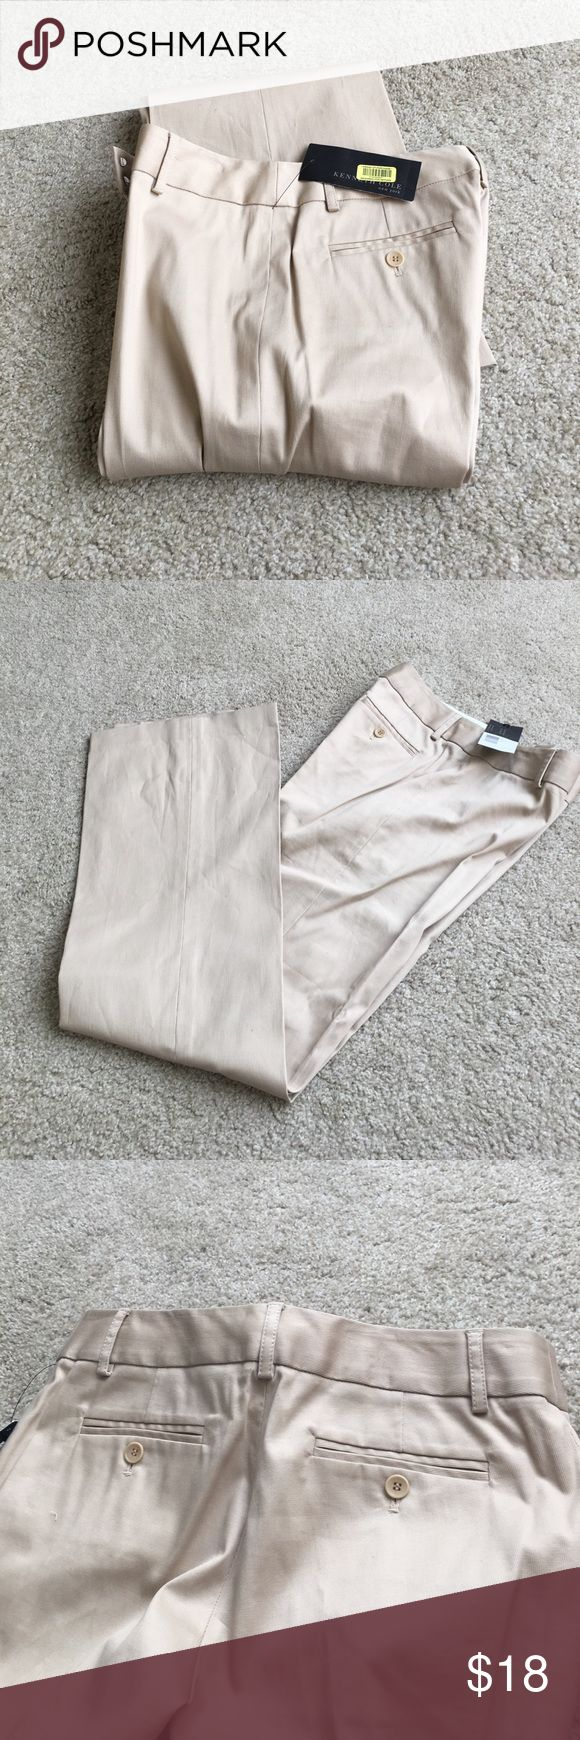 "New Kenneth Cole Kyla pants Tan pants purchased at Dillard's. Style is Kayla by Kenneth Cole New York. 98% cotton, 2% Lycra. Leg has a slight Flare. Inseam is 33"". New with tags. Size 4 Kenneth Cole Pants"